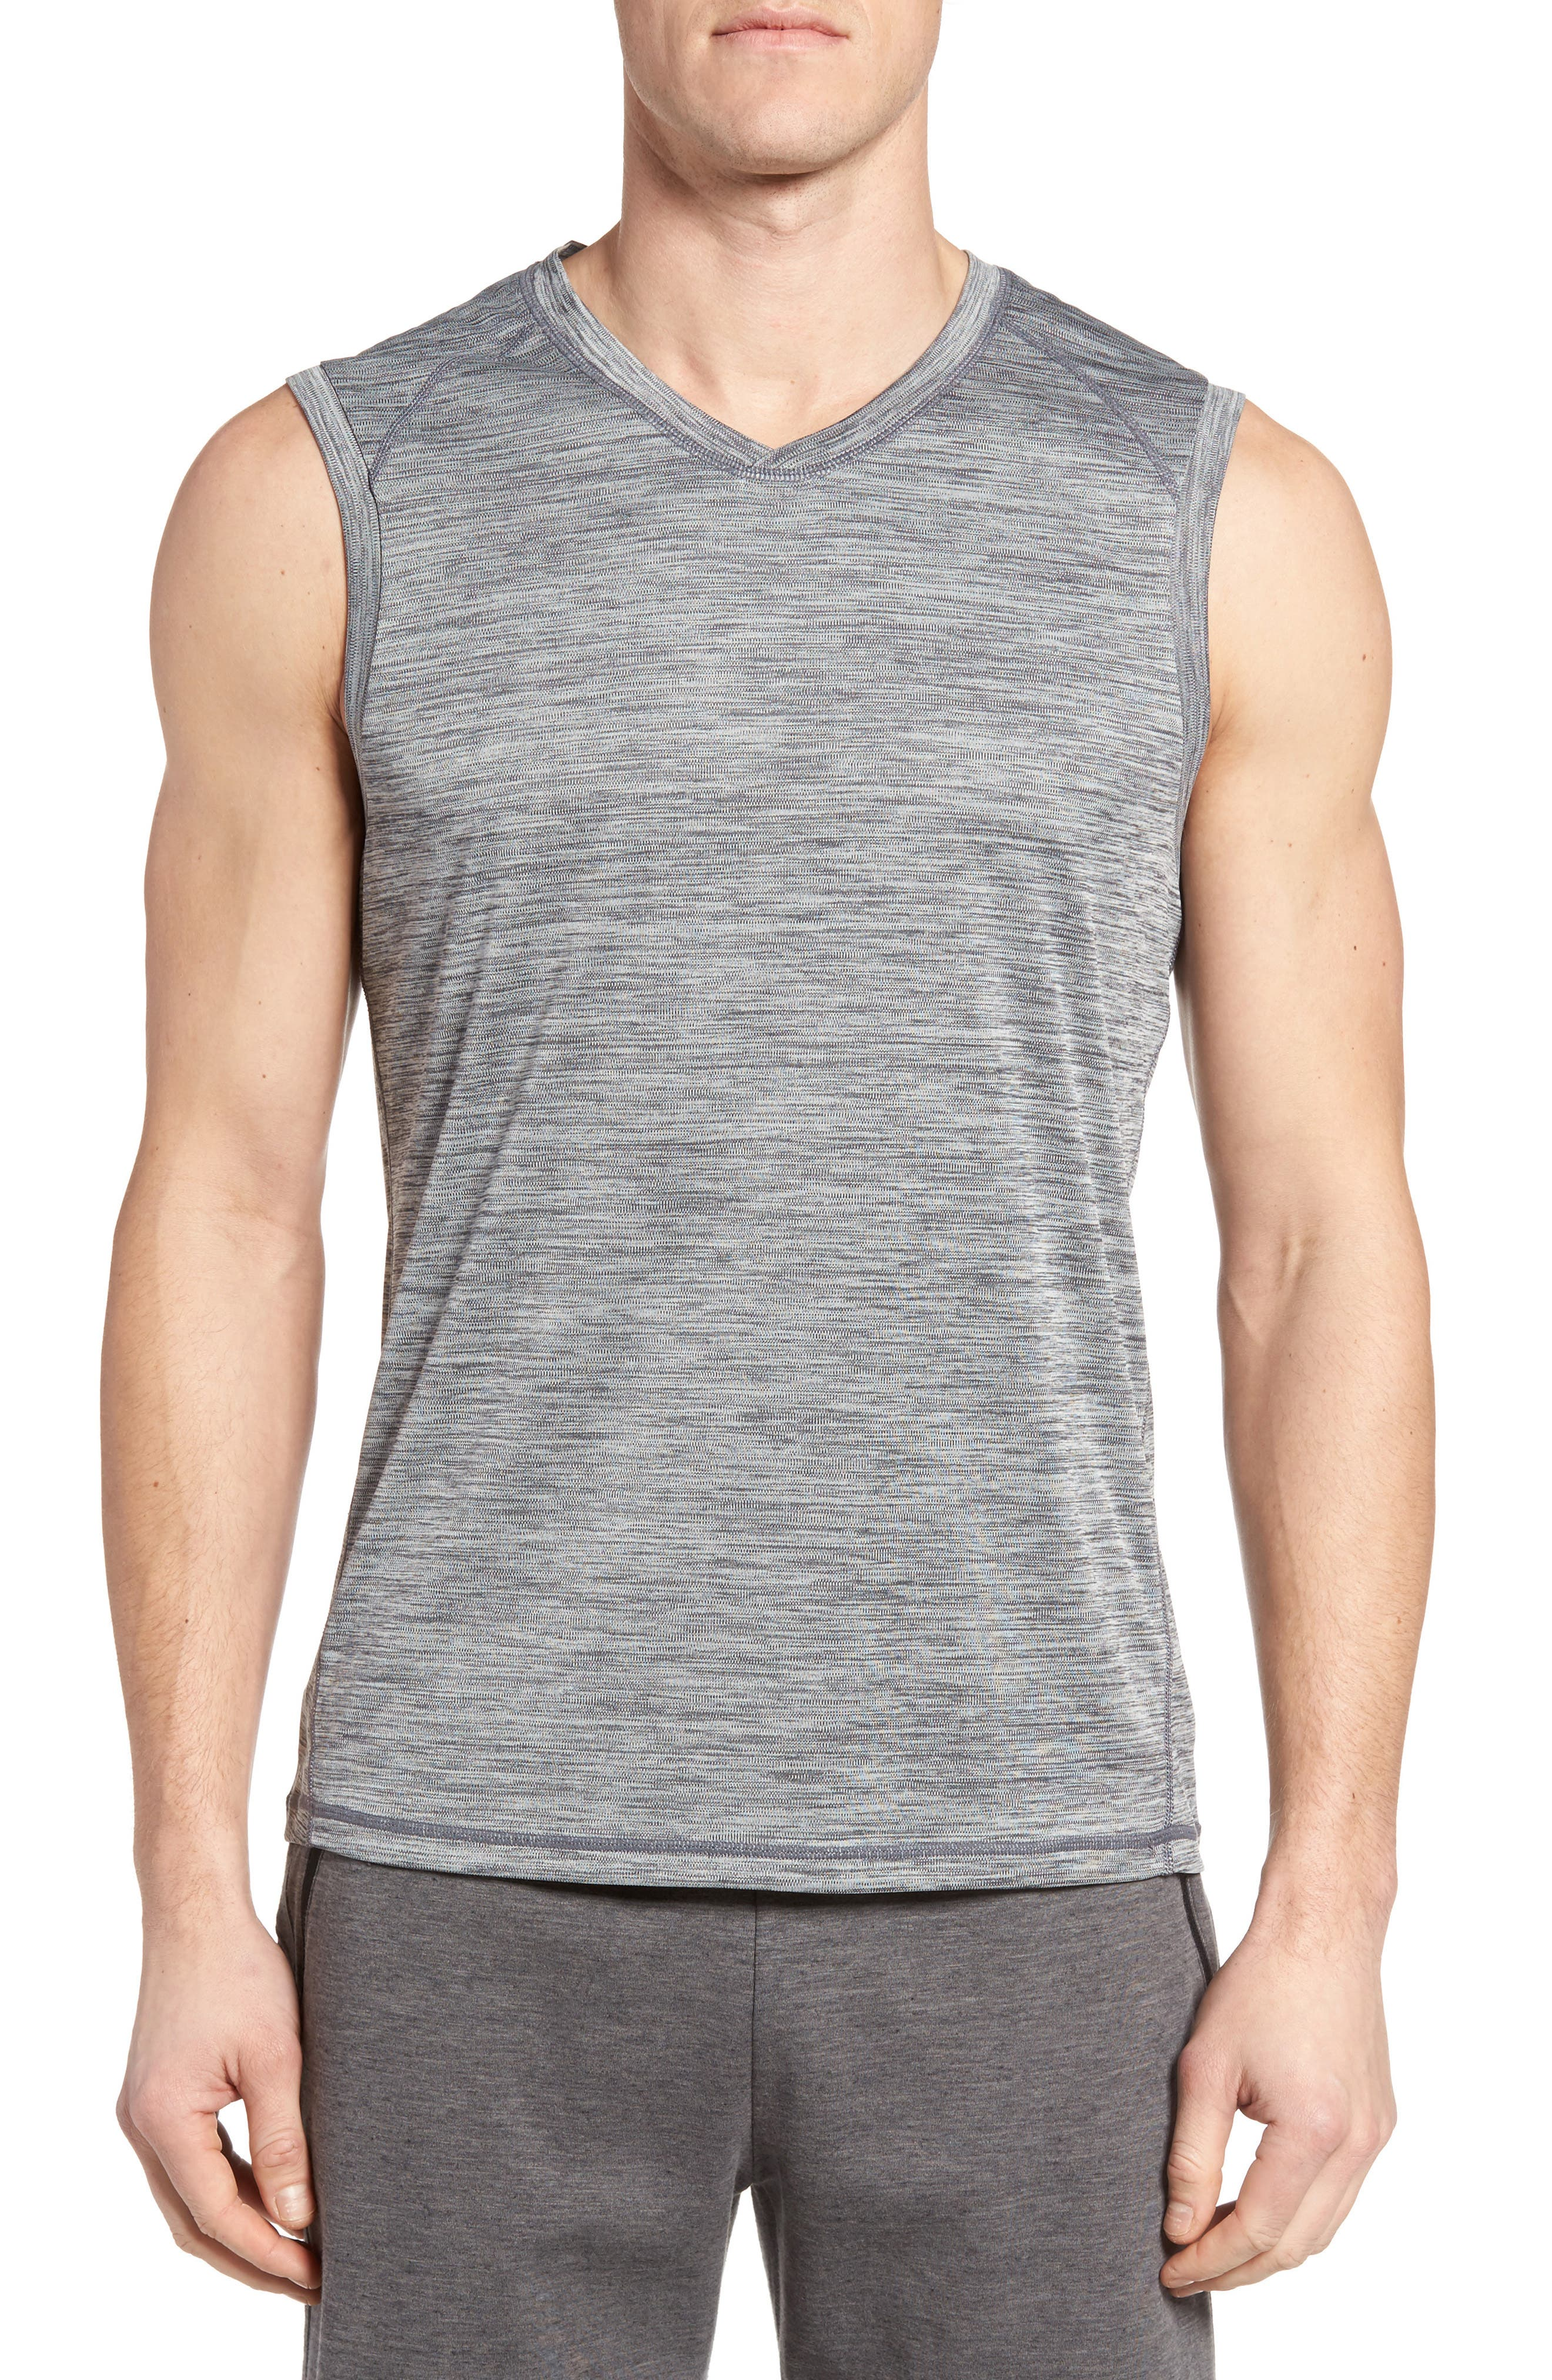 Triplite Muscle T-Shirt,                             Main thumbnail 1, color,                             021